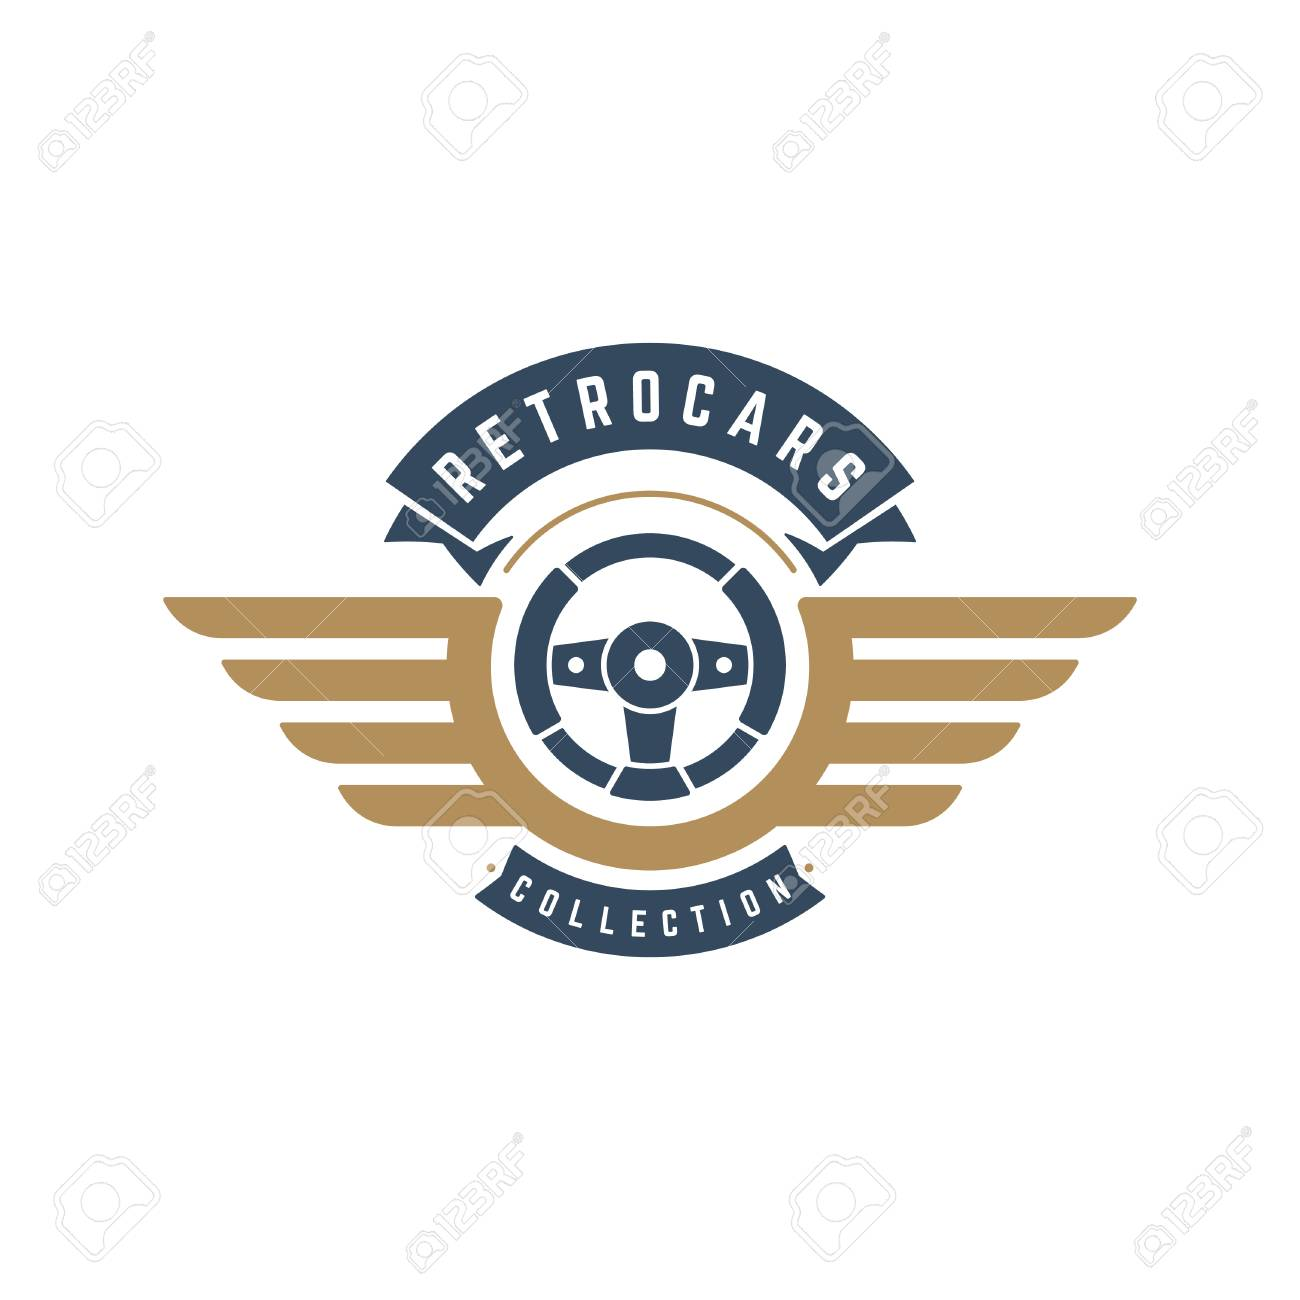 Car Steering Wheel Logo Template Vector Design Element Vintage Royalty Free Cliparts Vectors And Stock Illustration Image 87885434